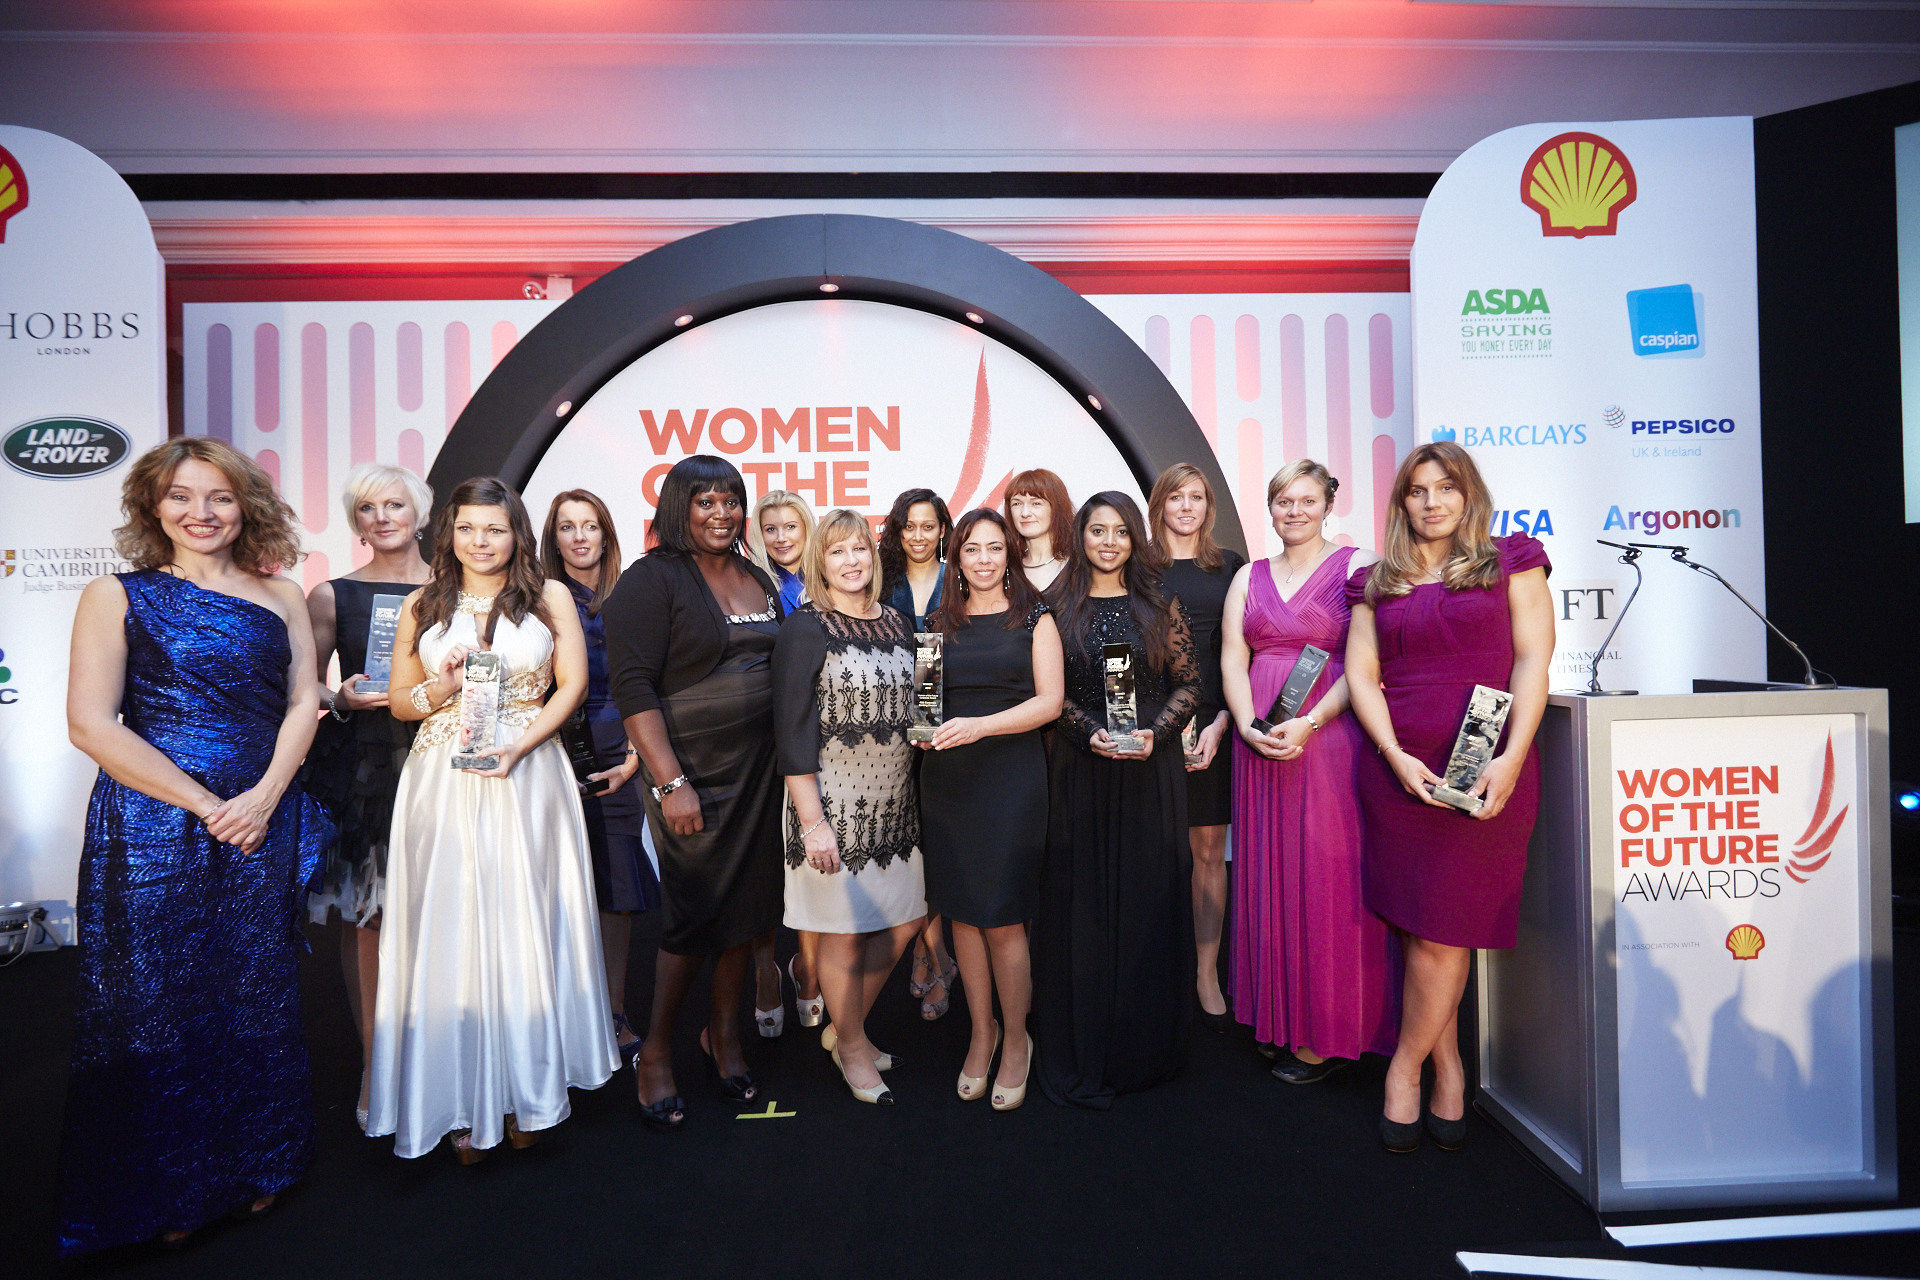 Women of the Future 2013: Shortlists announced